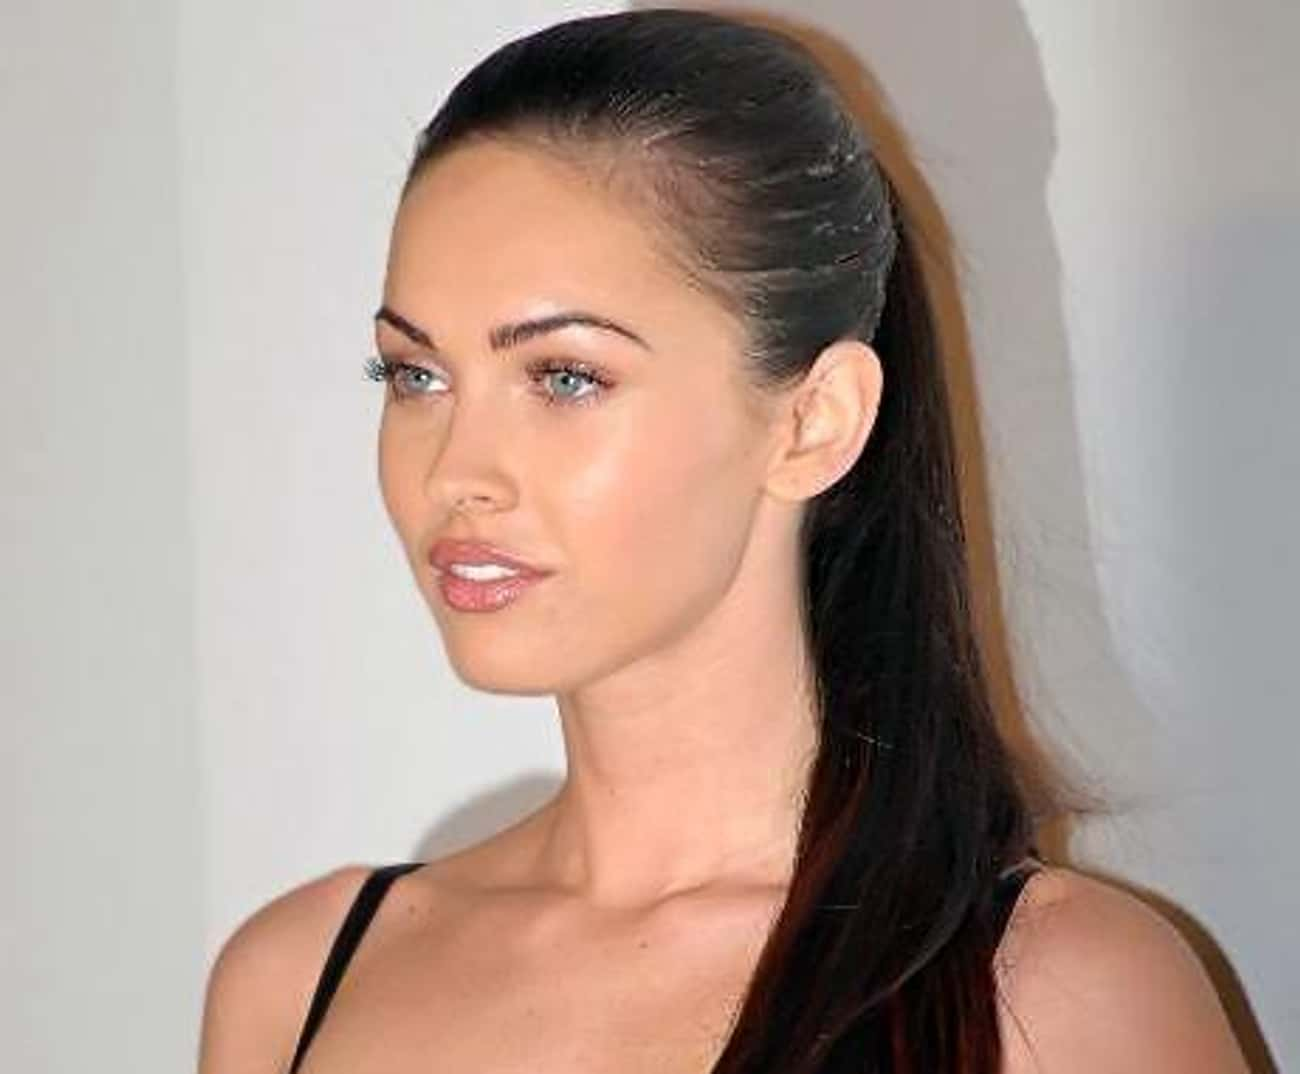 Megan Fox Supposedly Never Flushes The Toilet